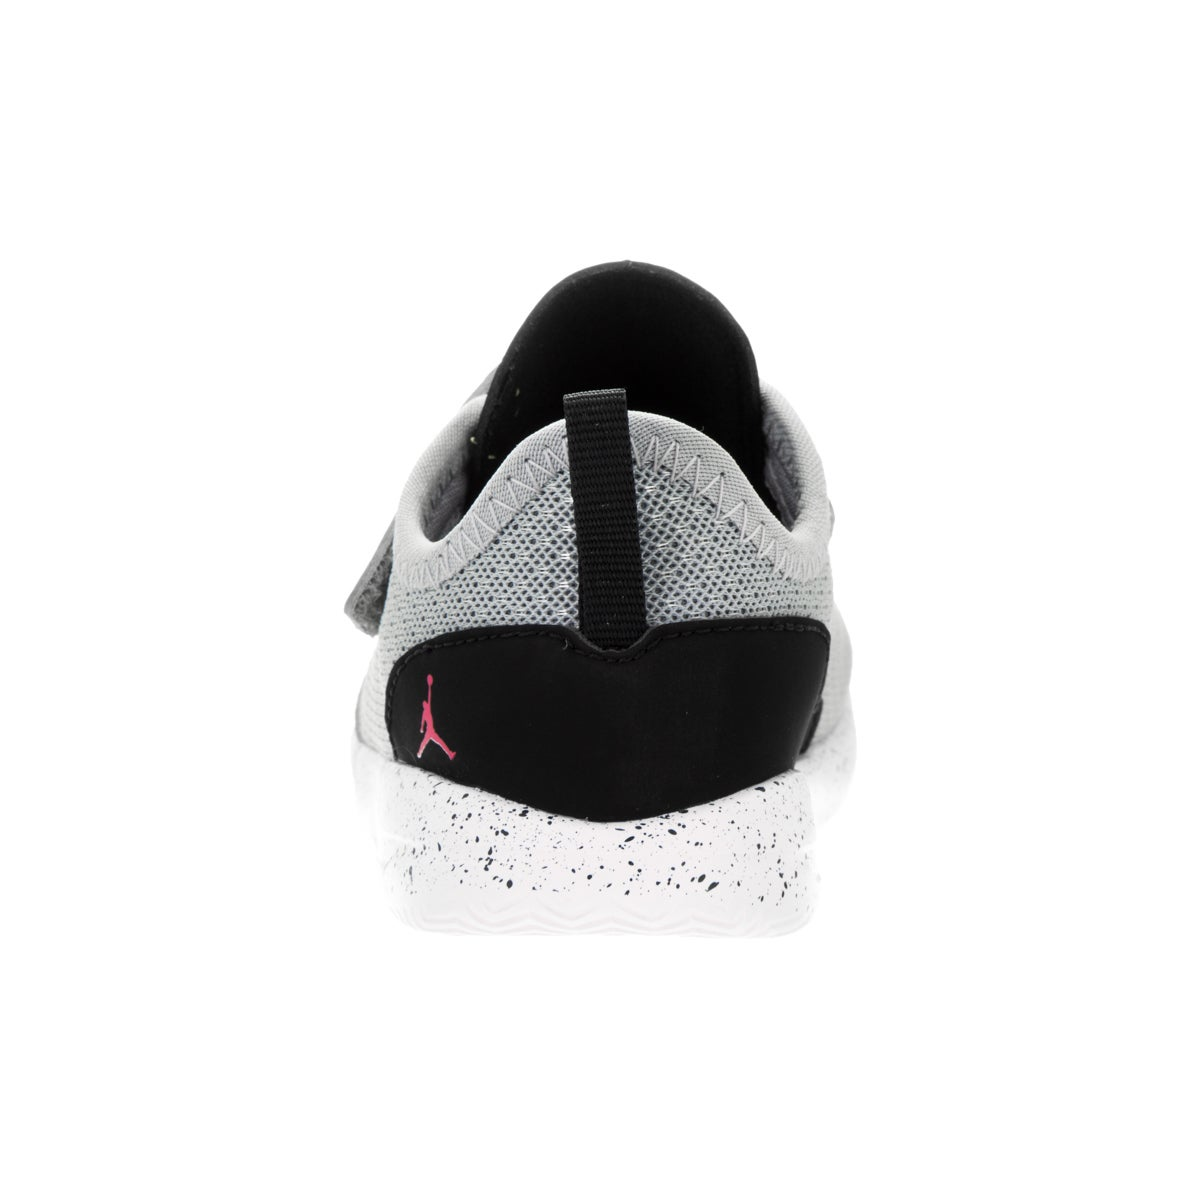 promo code 5295f 51cd2 Shop Nike Jordan Kids  Jordan Reveal Wolf Grey, Vivid Pink, Black, and White  Synthetic Basketball Shoes - Free Shipping Today - Overstock - 13394455